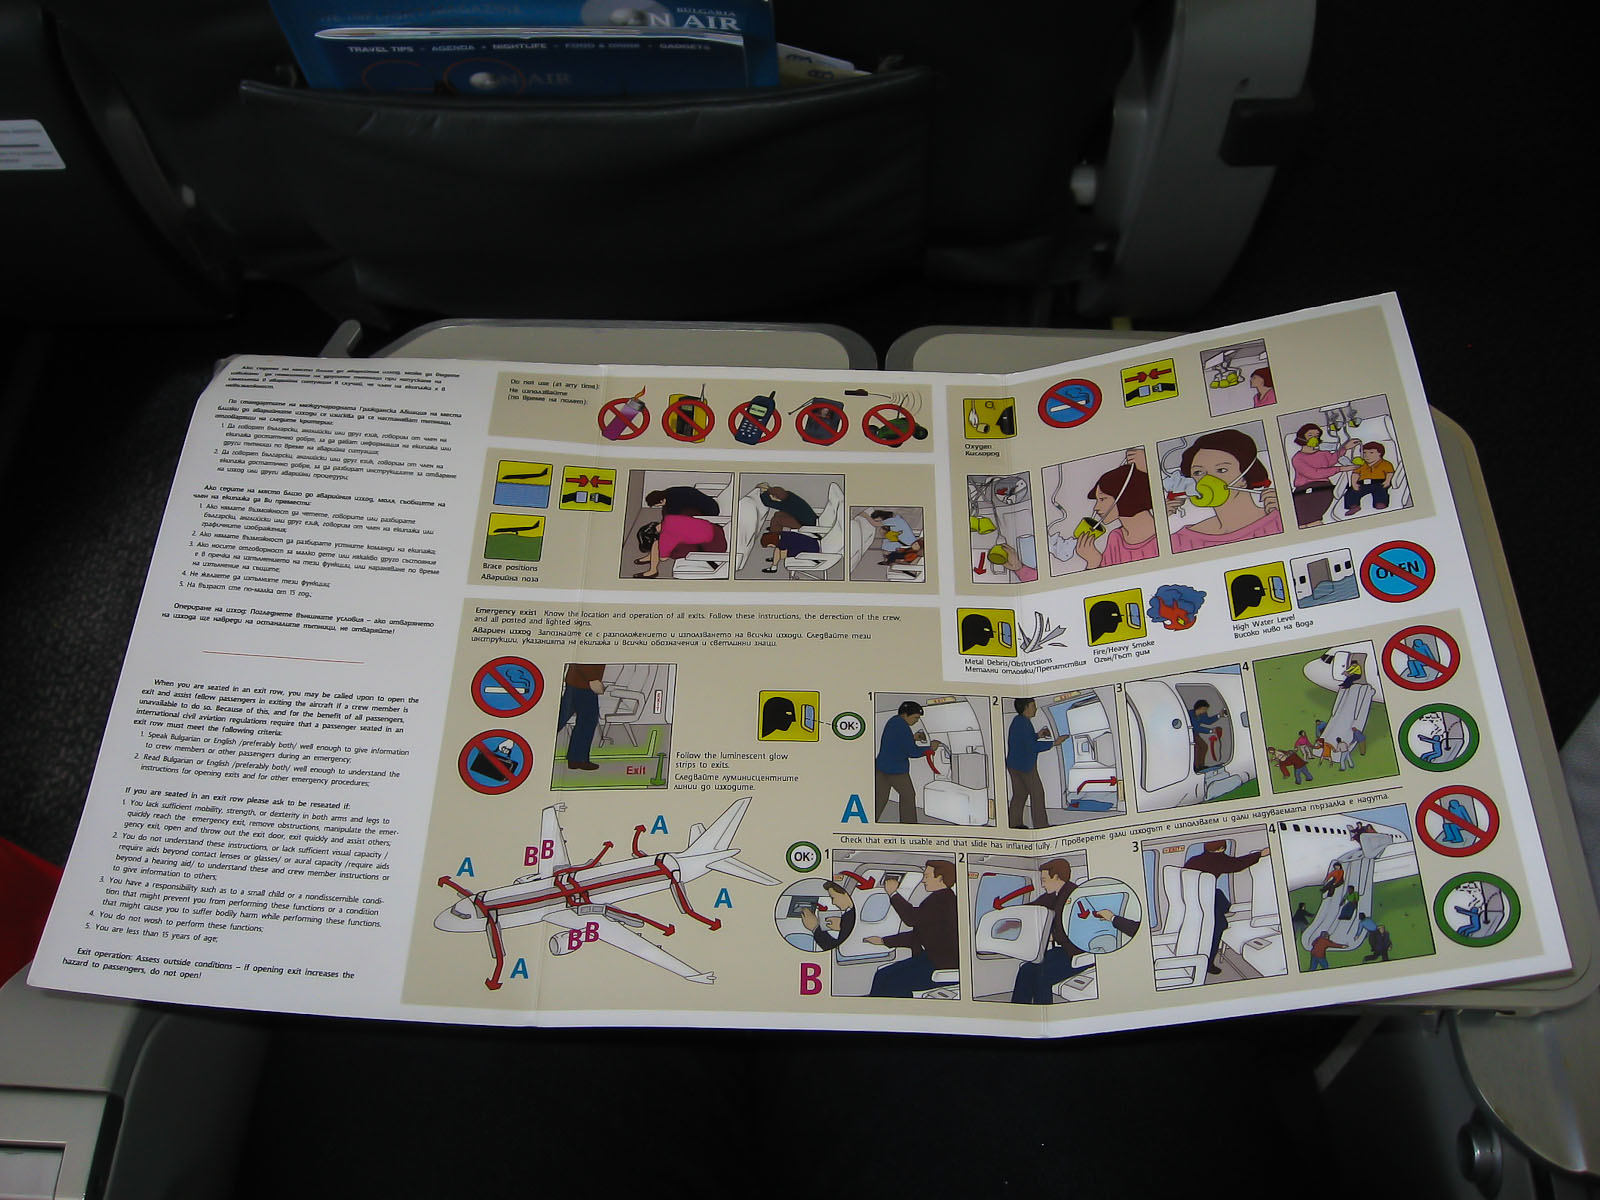 Safety card of Bulgaria Air